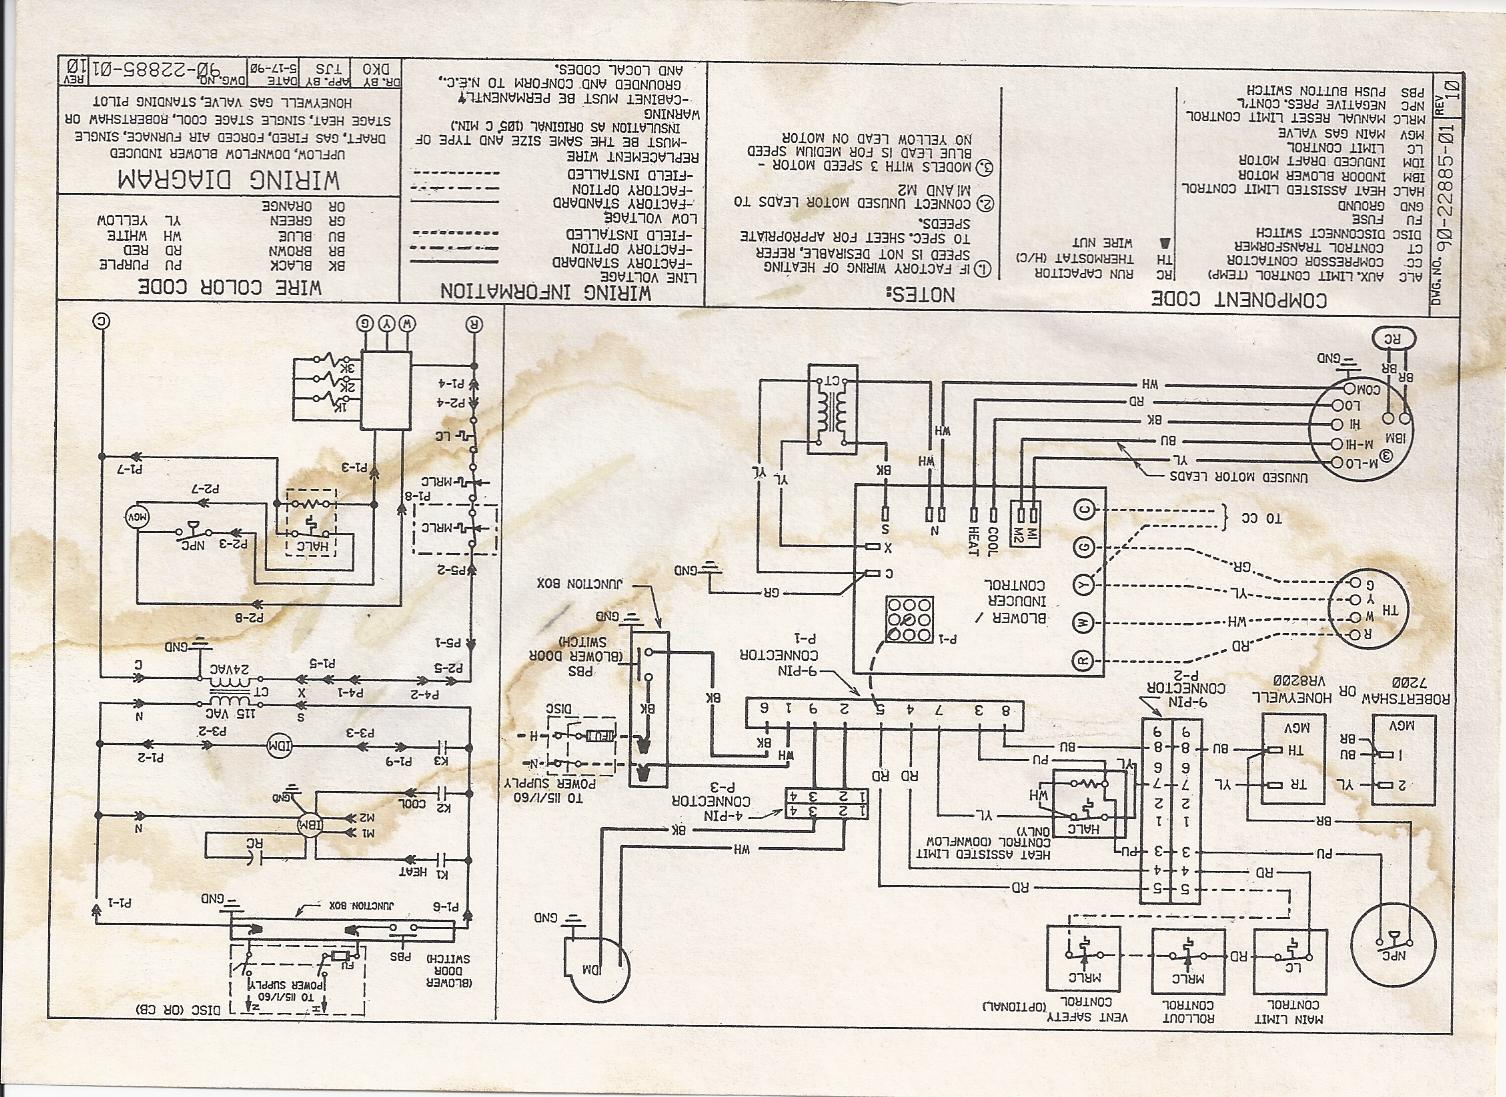 old miller furnace wiring diagram my ruud indoor blower runs all the time, i have been told ... henry old furnace wiring diagram